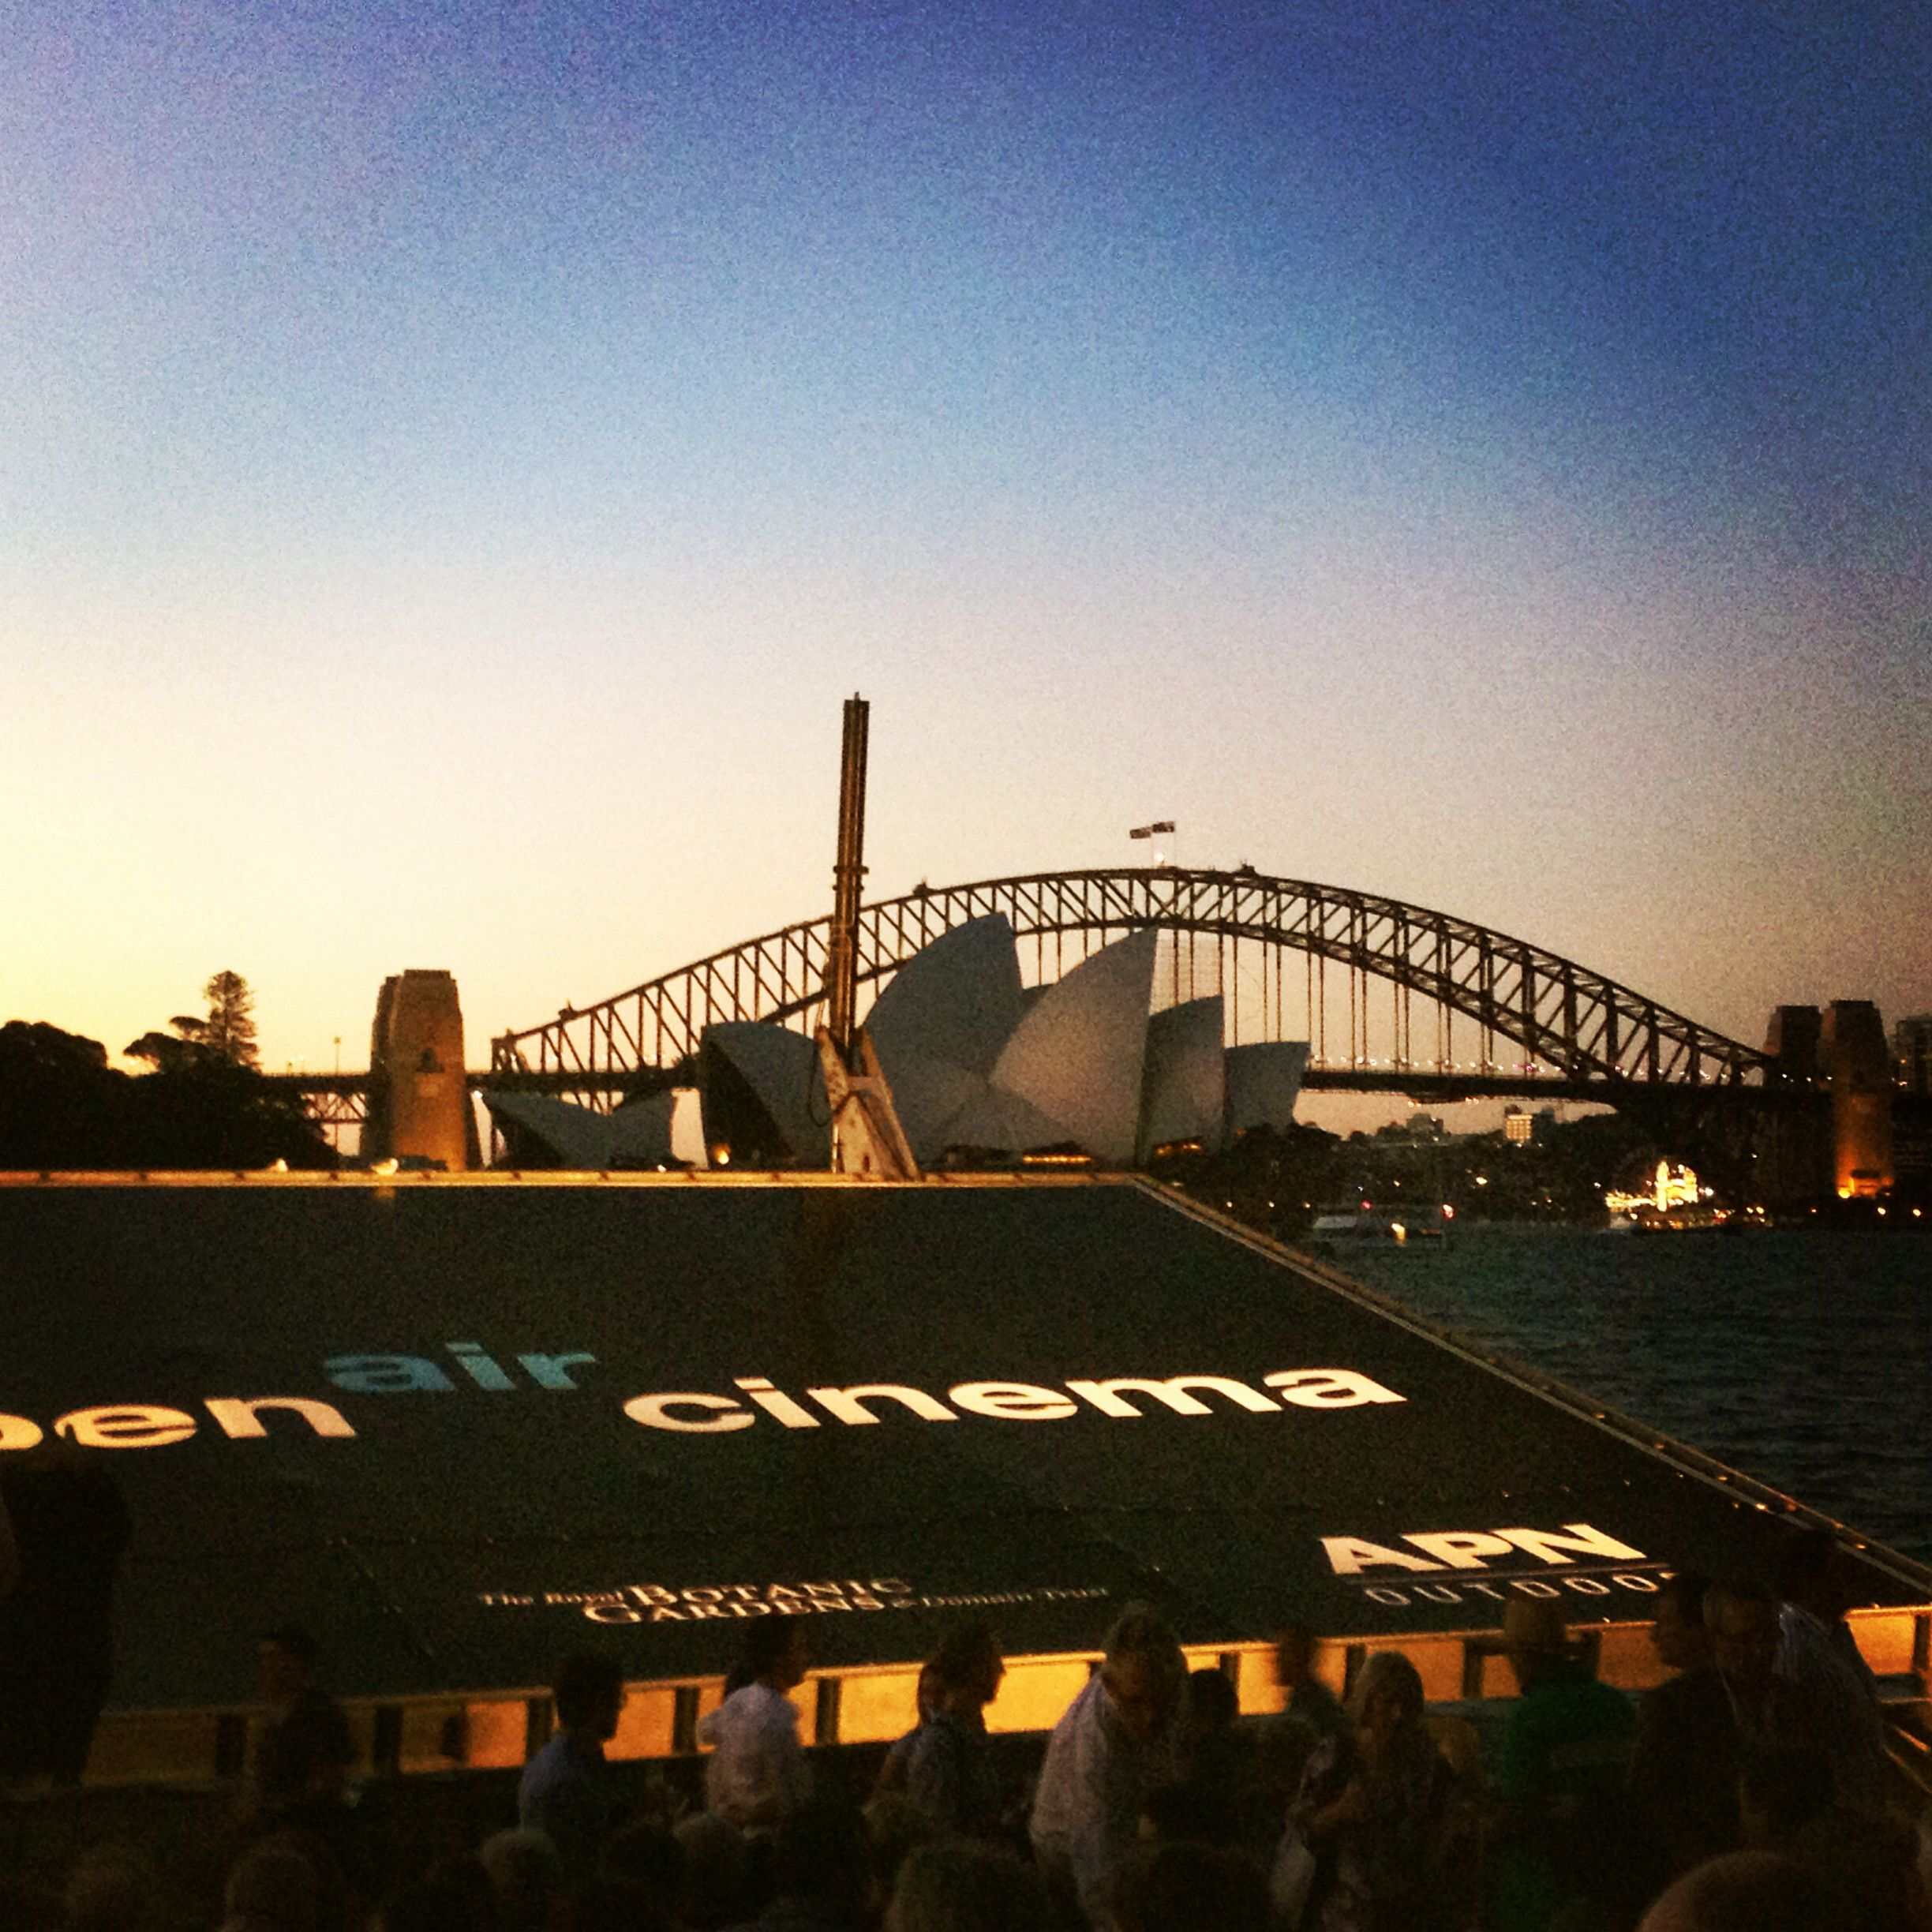 Open air cinema Sydney Harbour. Photo by Lisa Kaye